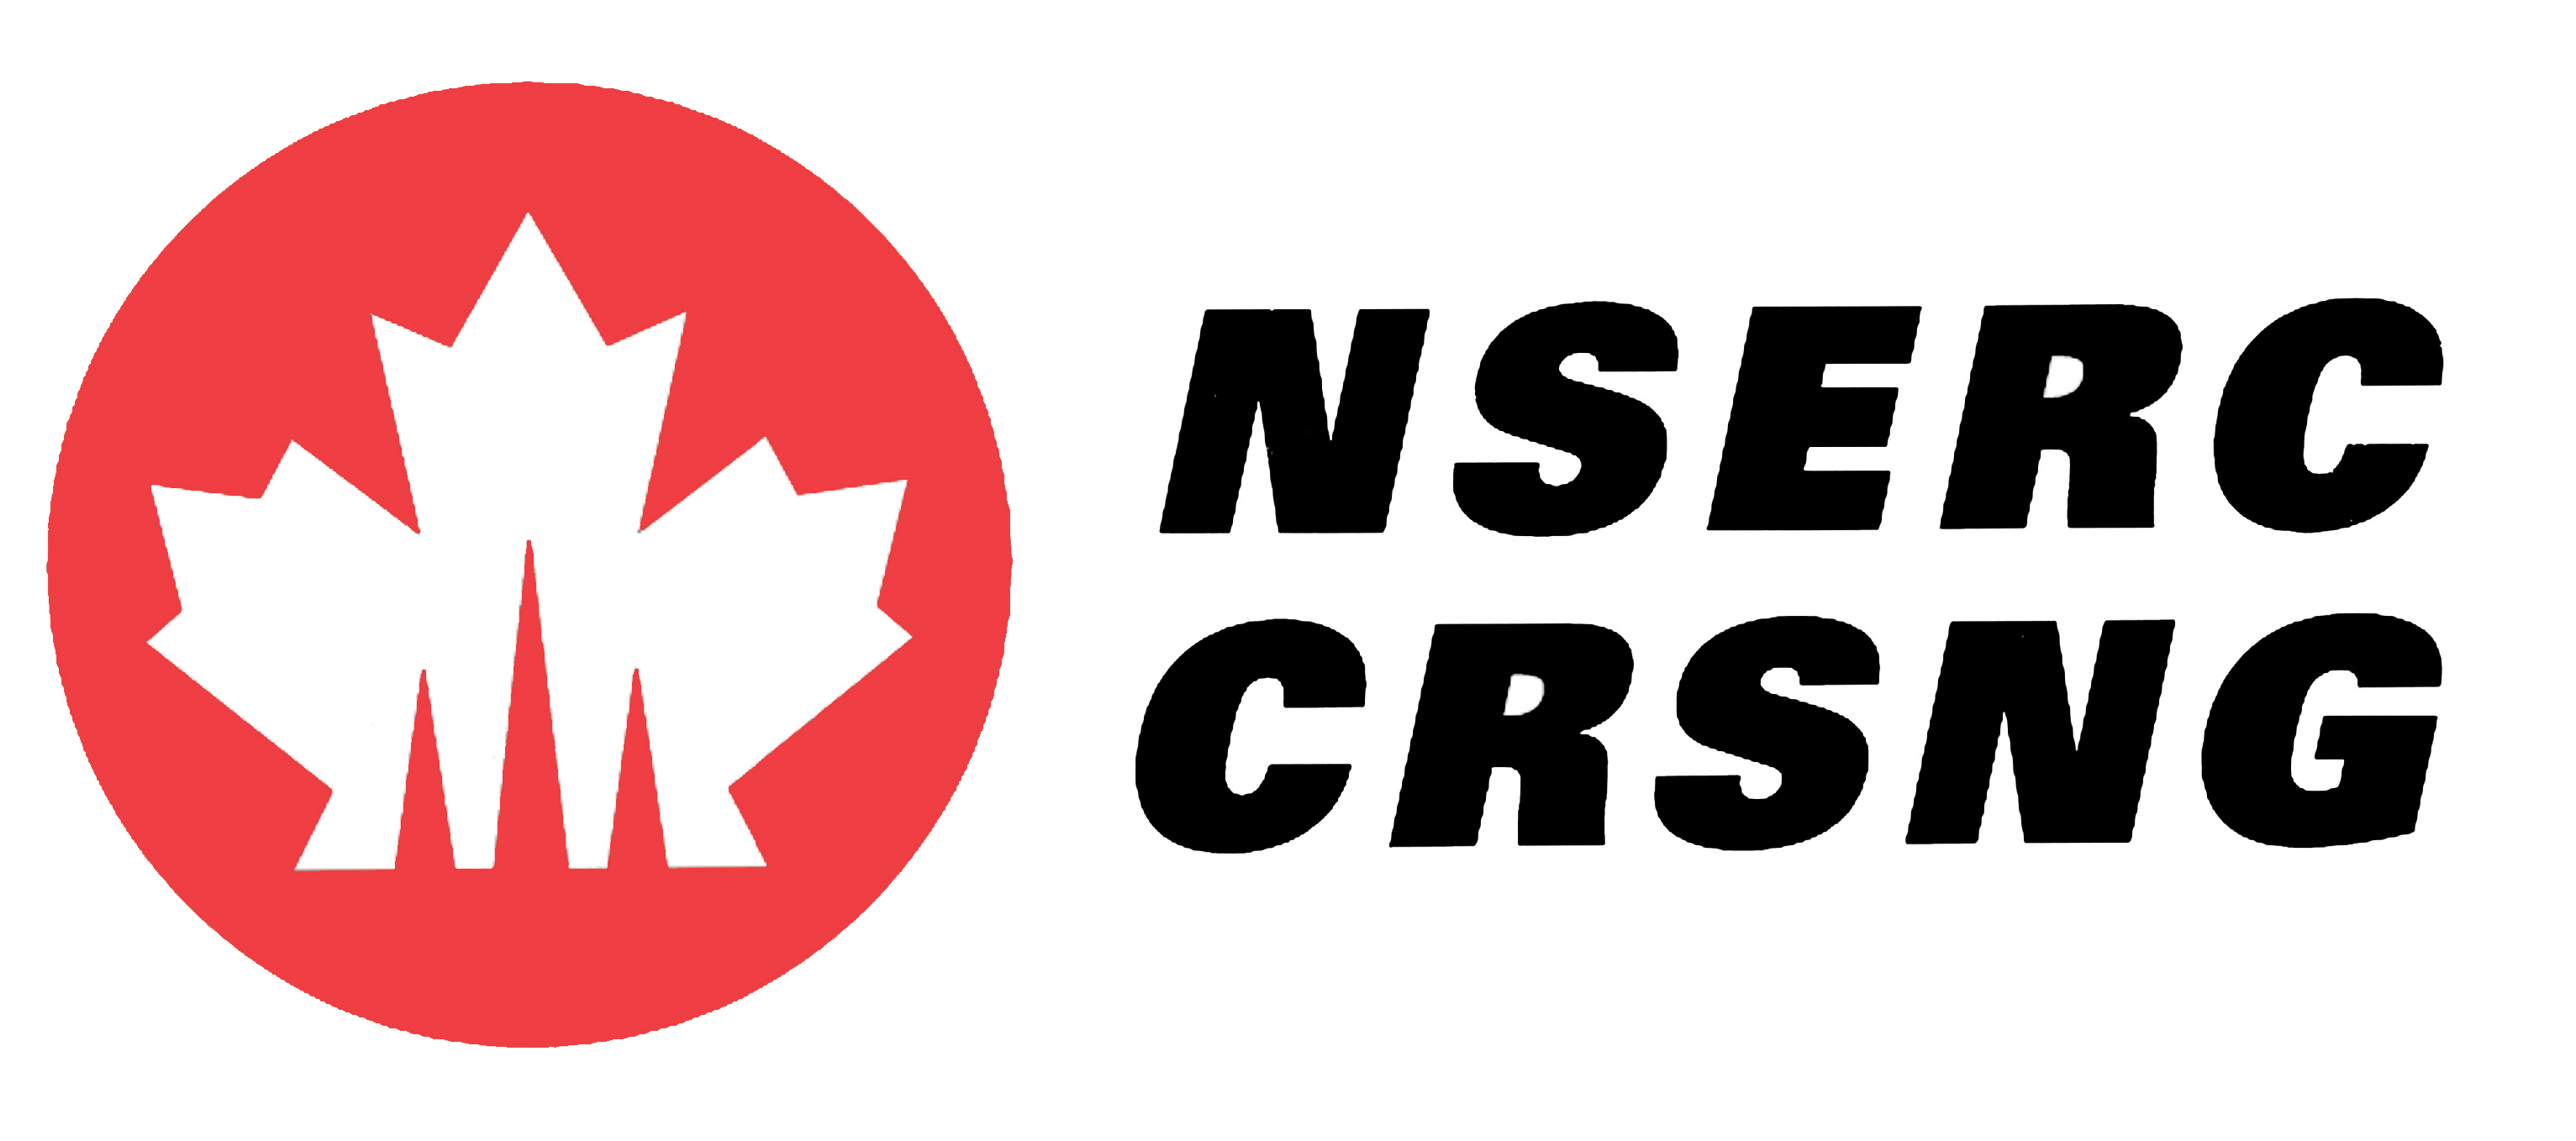 Nserc crsng high